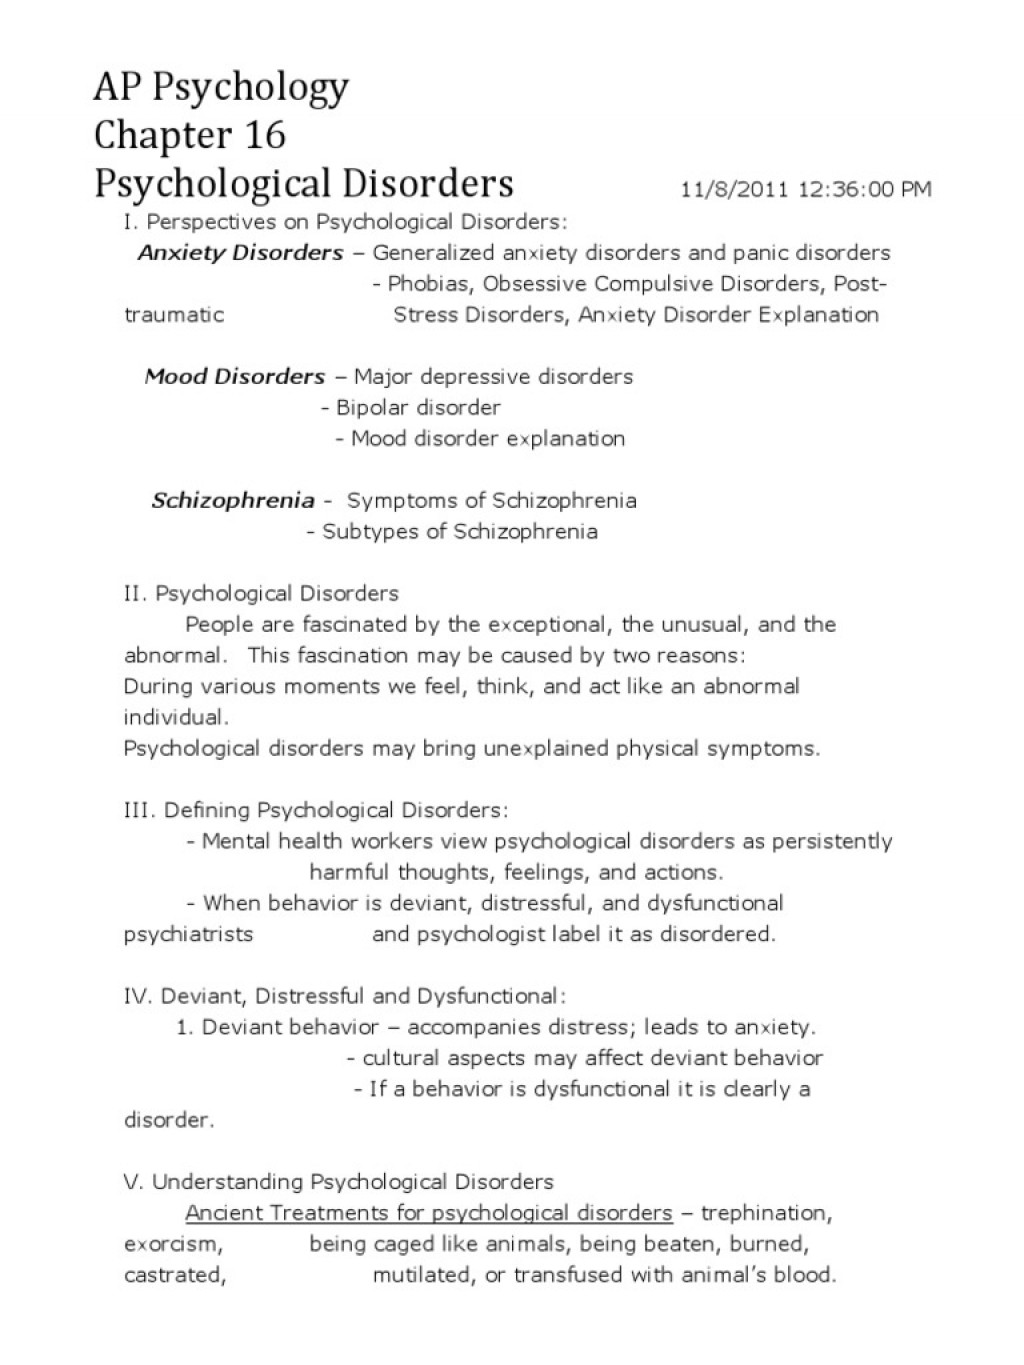 019 Bipolar Disorder Essay Topics Title Pdf College Introduction Question Conclusion Examples Outline How To Write Paragraph Research Best A Paper Good For Large